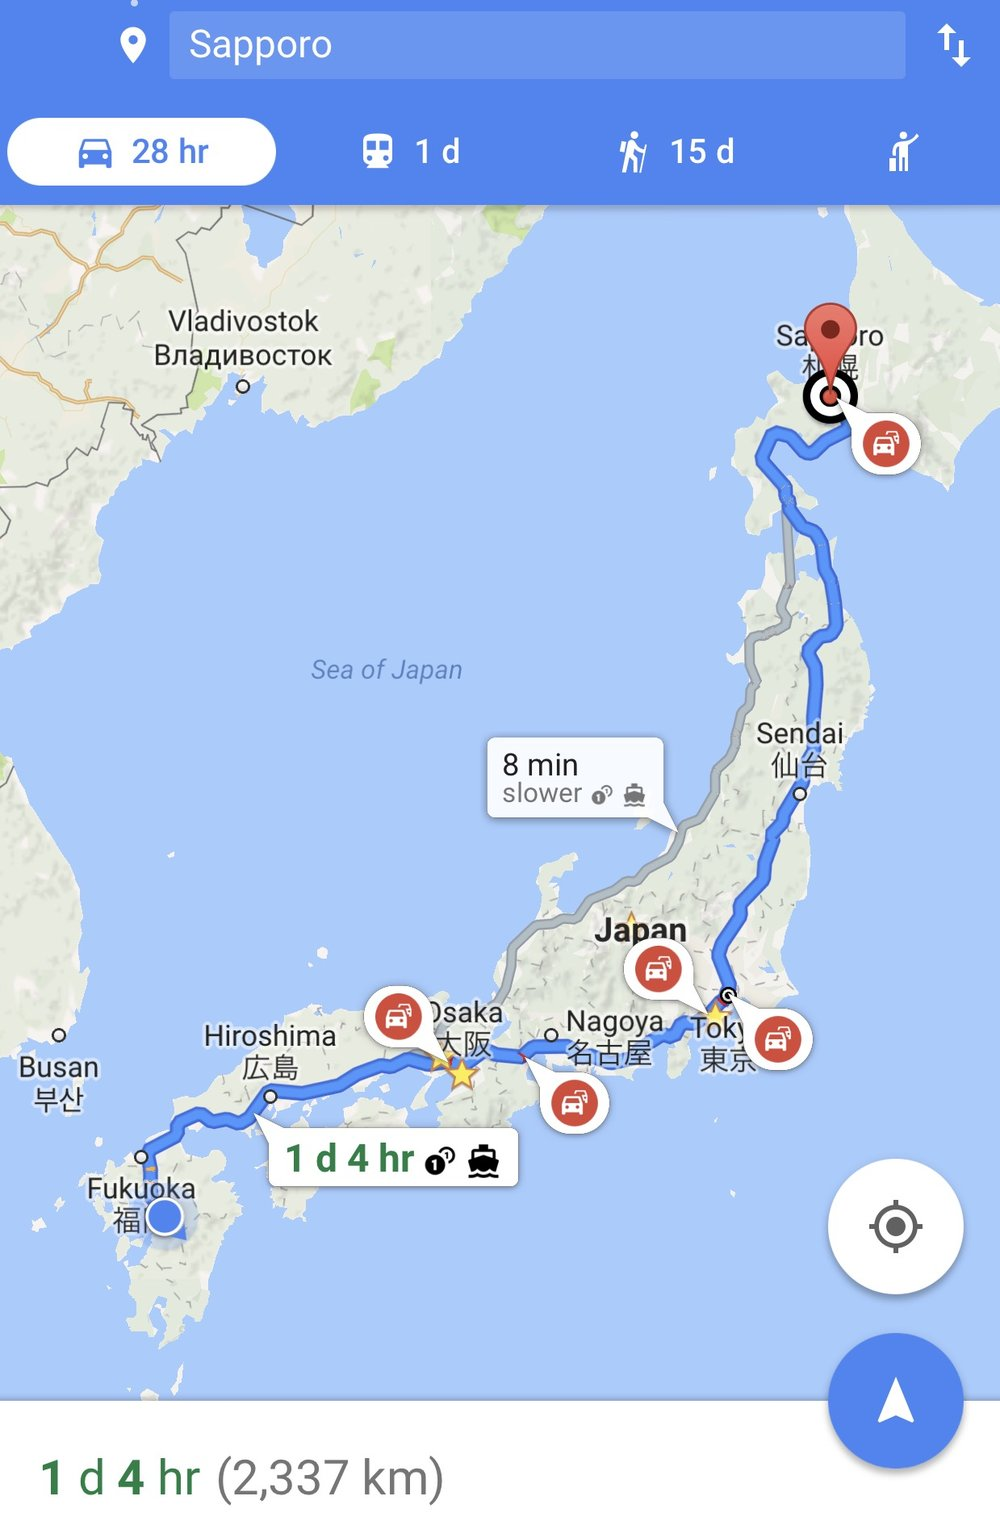 Kumamoto to Sapporo: 28 hours of driving, plus charging, sightseeing and sleeping